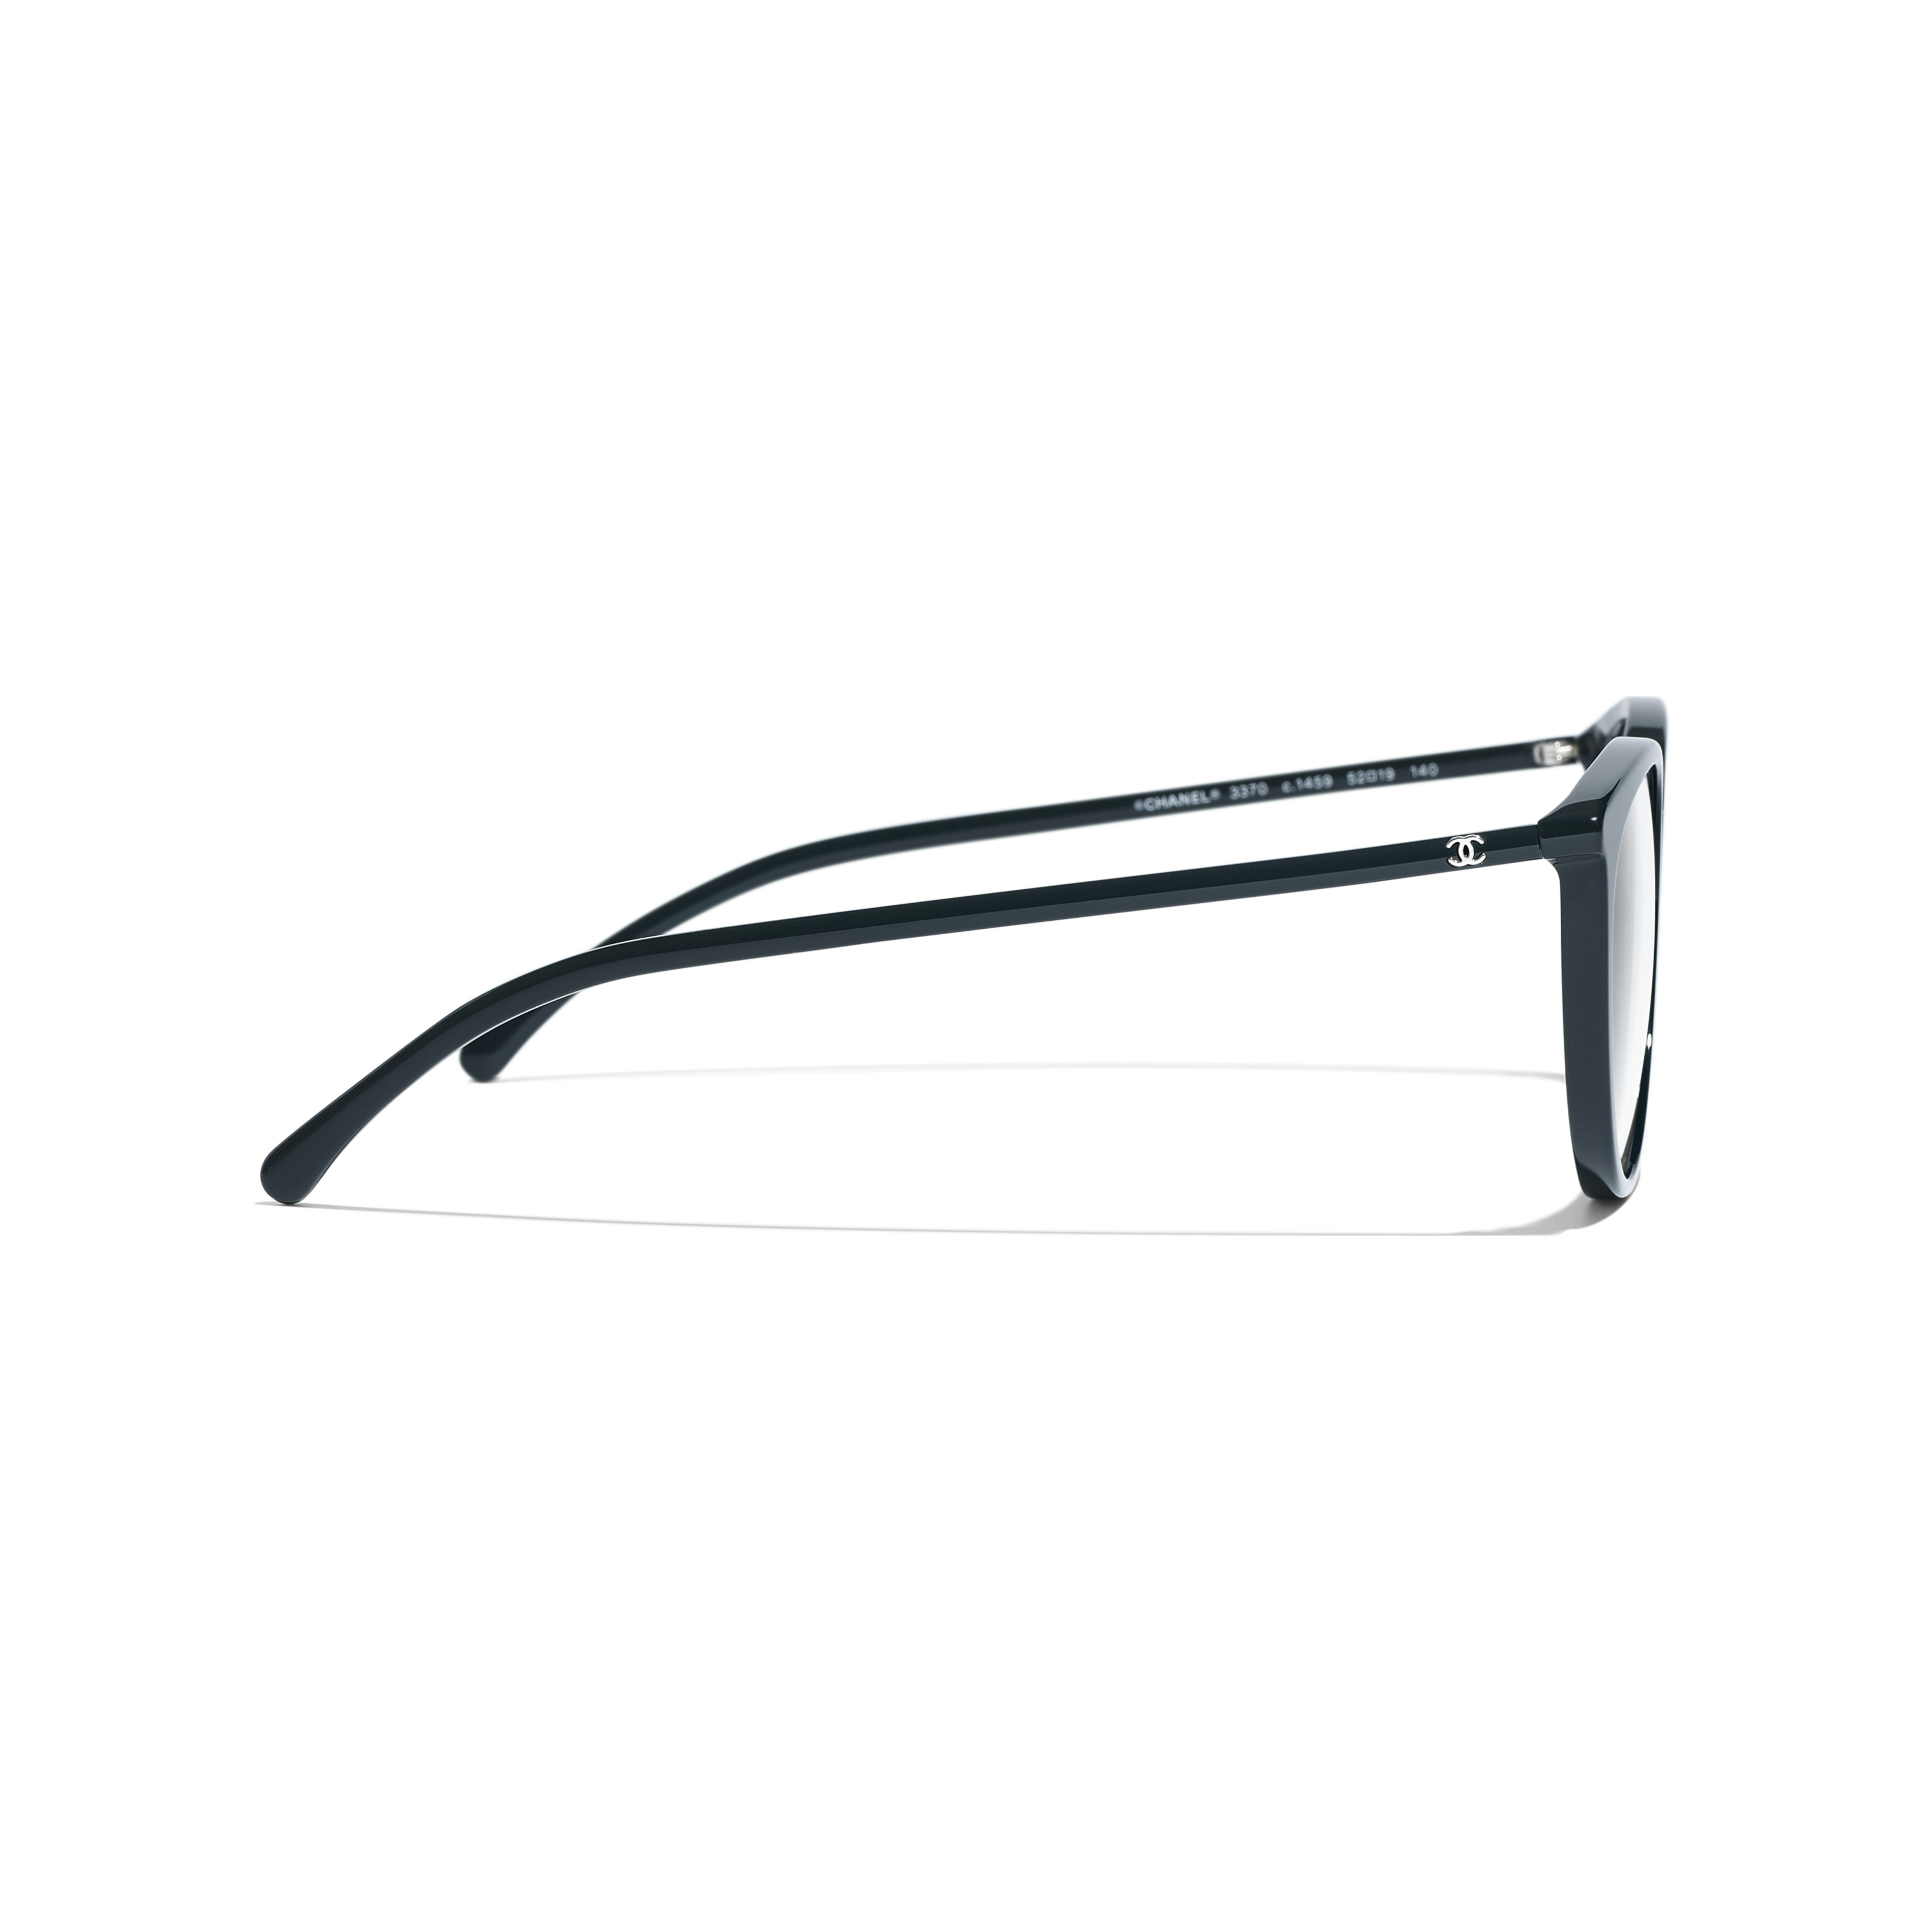 Butterfly Eyeglasses - Dark Green - Acetate - Other view - see full sized version